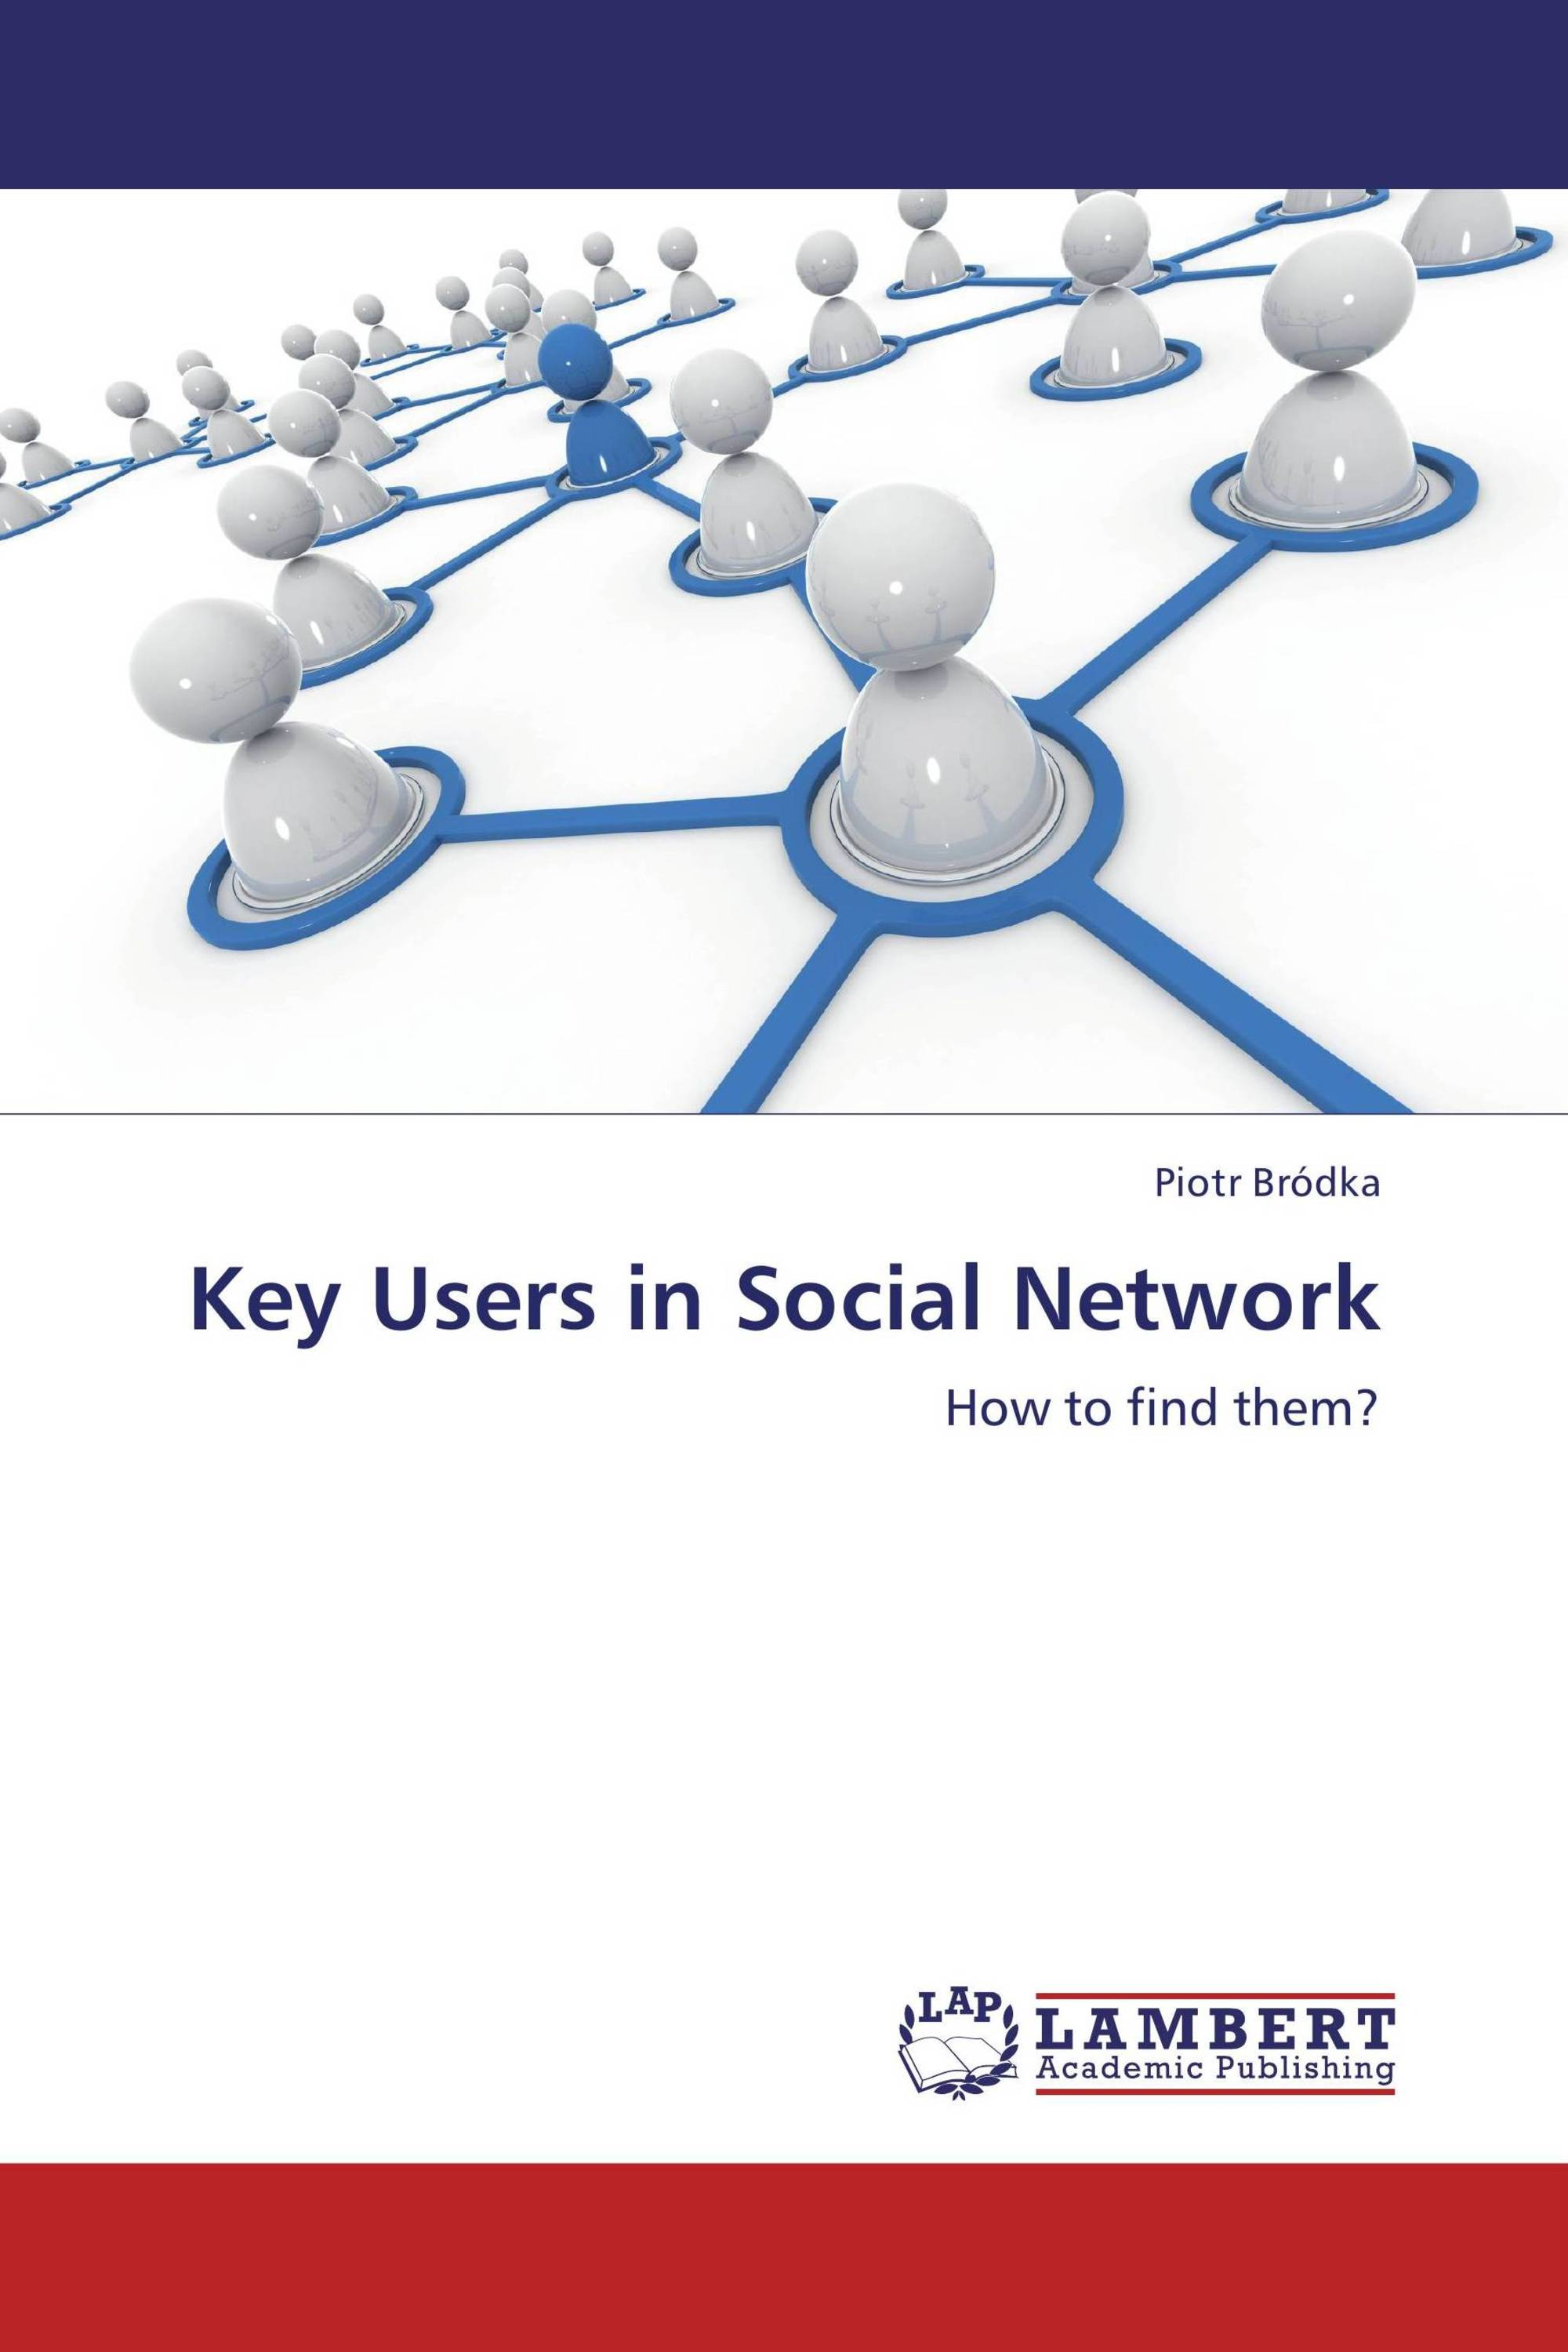 Key Users in Social Network